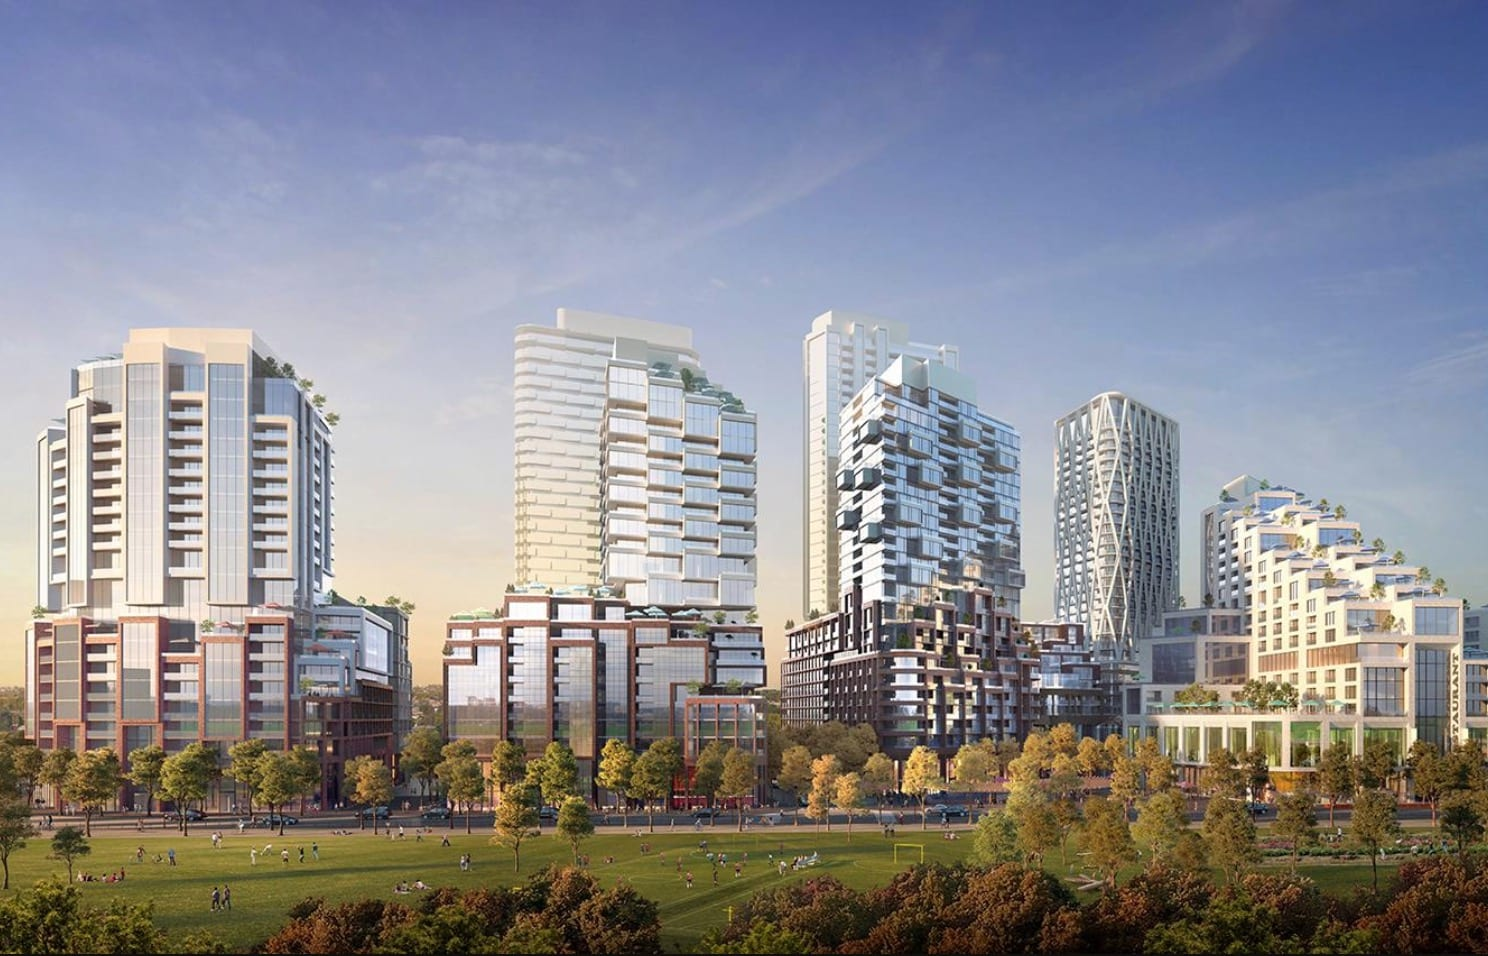 3D render of Galleria On The Park with several boxy, geometric condos and trees.